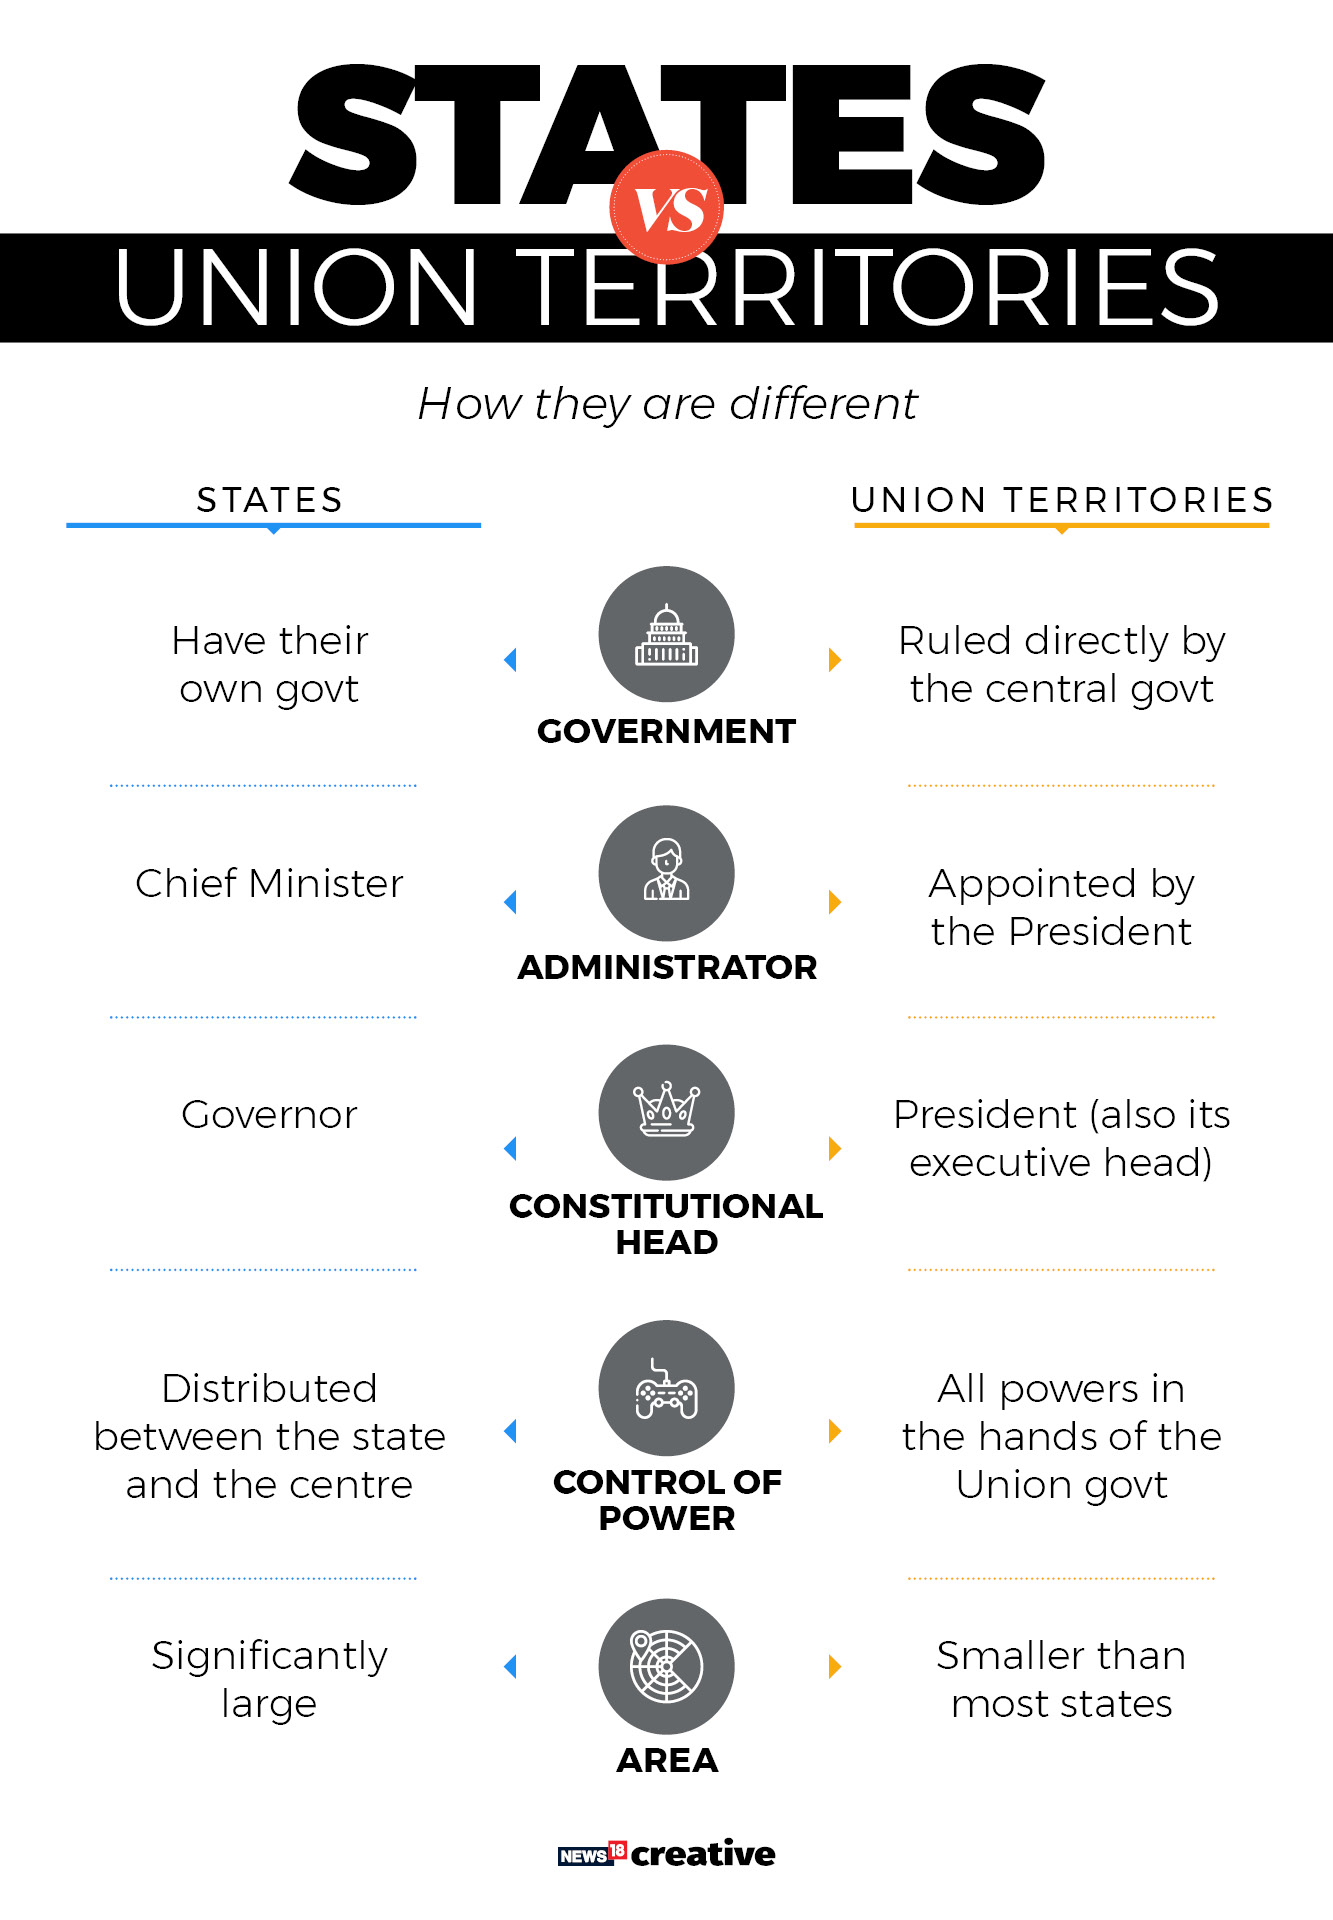 The difference between states and union territories## The difference between states and union territories